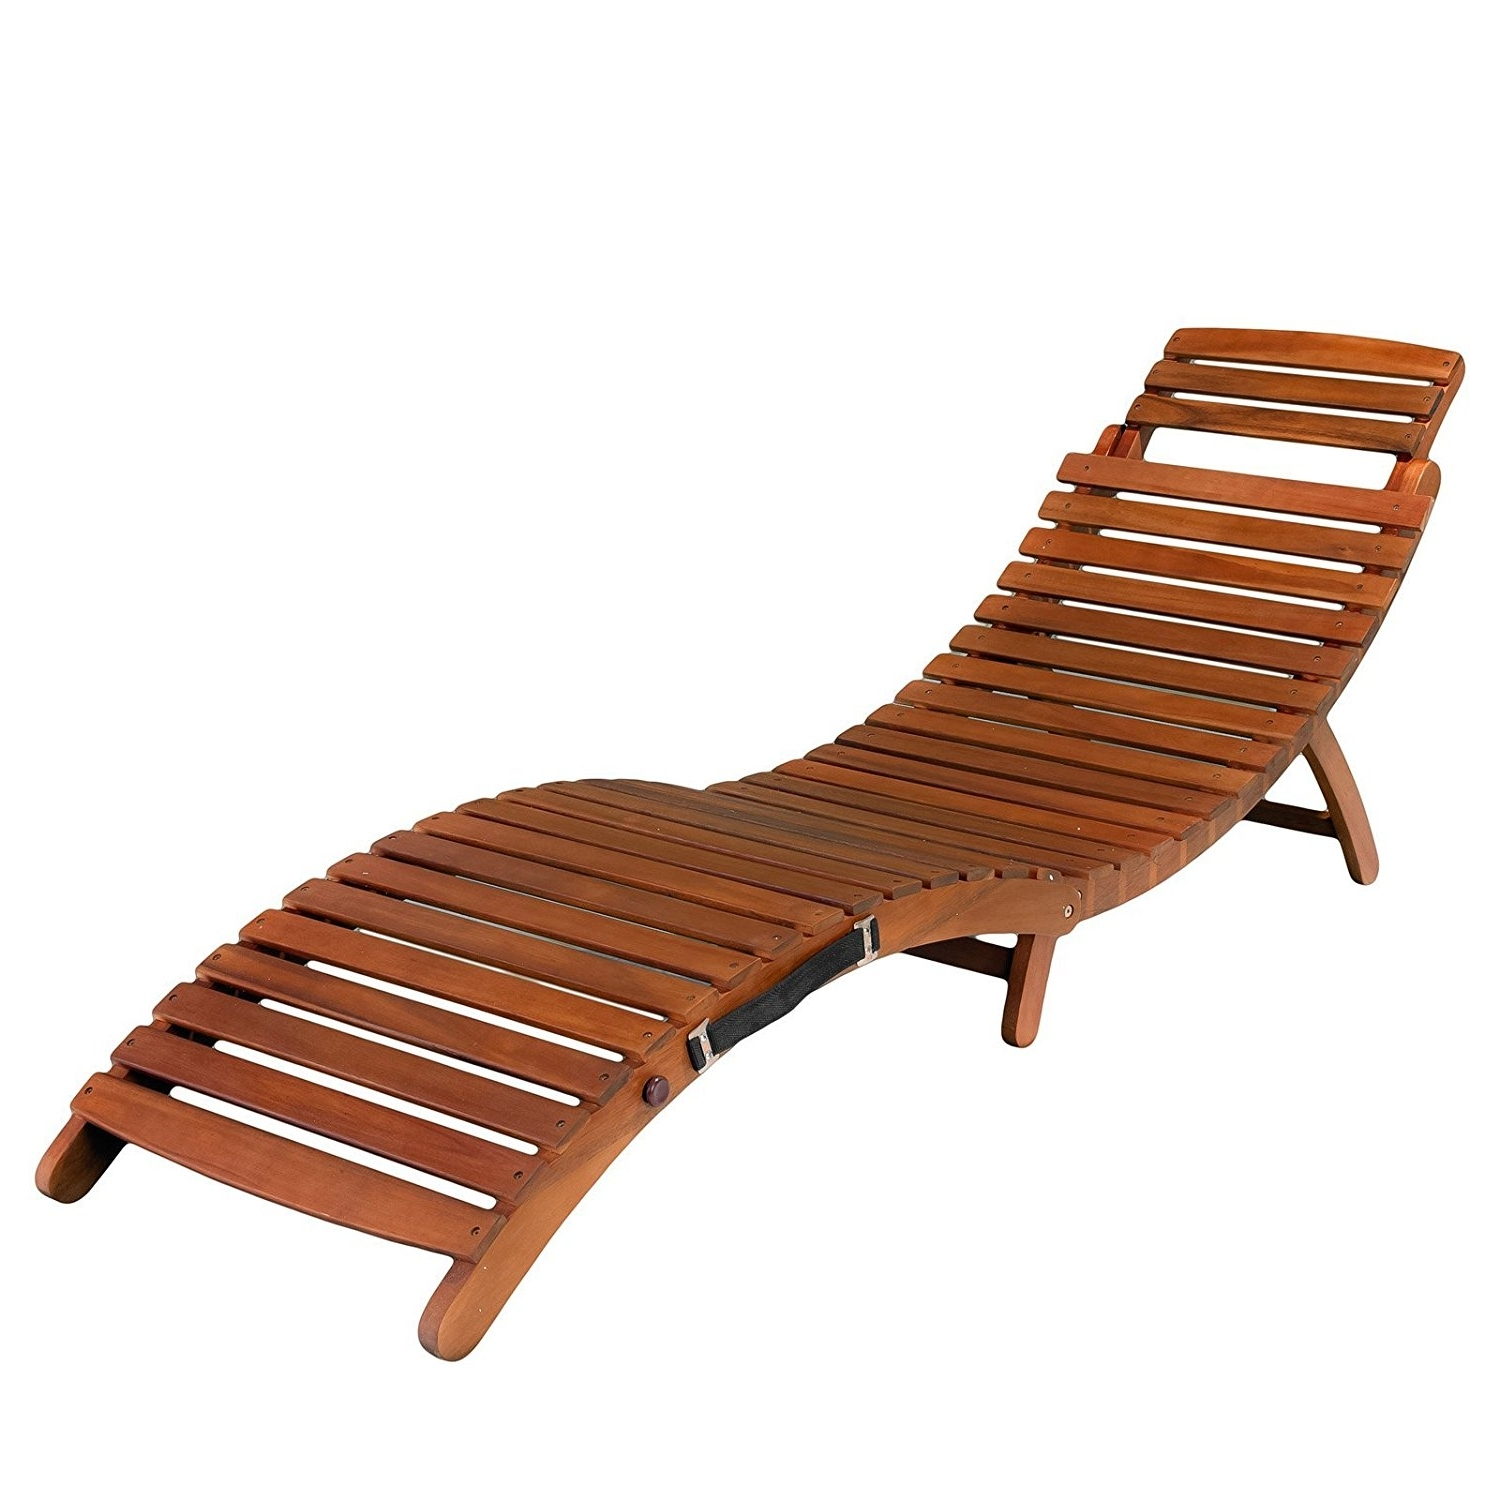 Widely Used Amazon: Lahaina Outdoor Chaise Lounge: Garden & Outdoor With Foldable Chaise Lounge Outdoor Chairs (View 14 of 15)